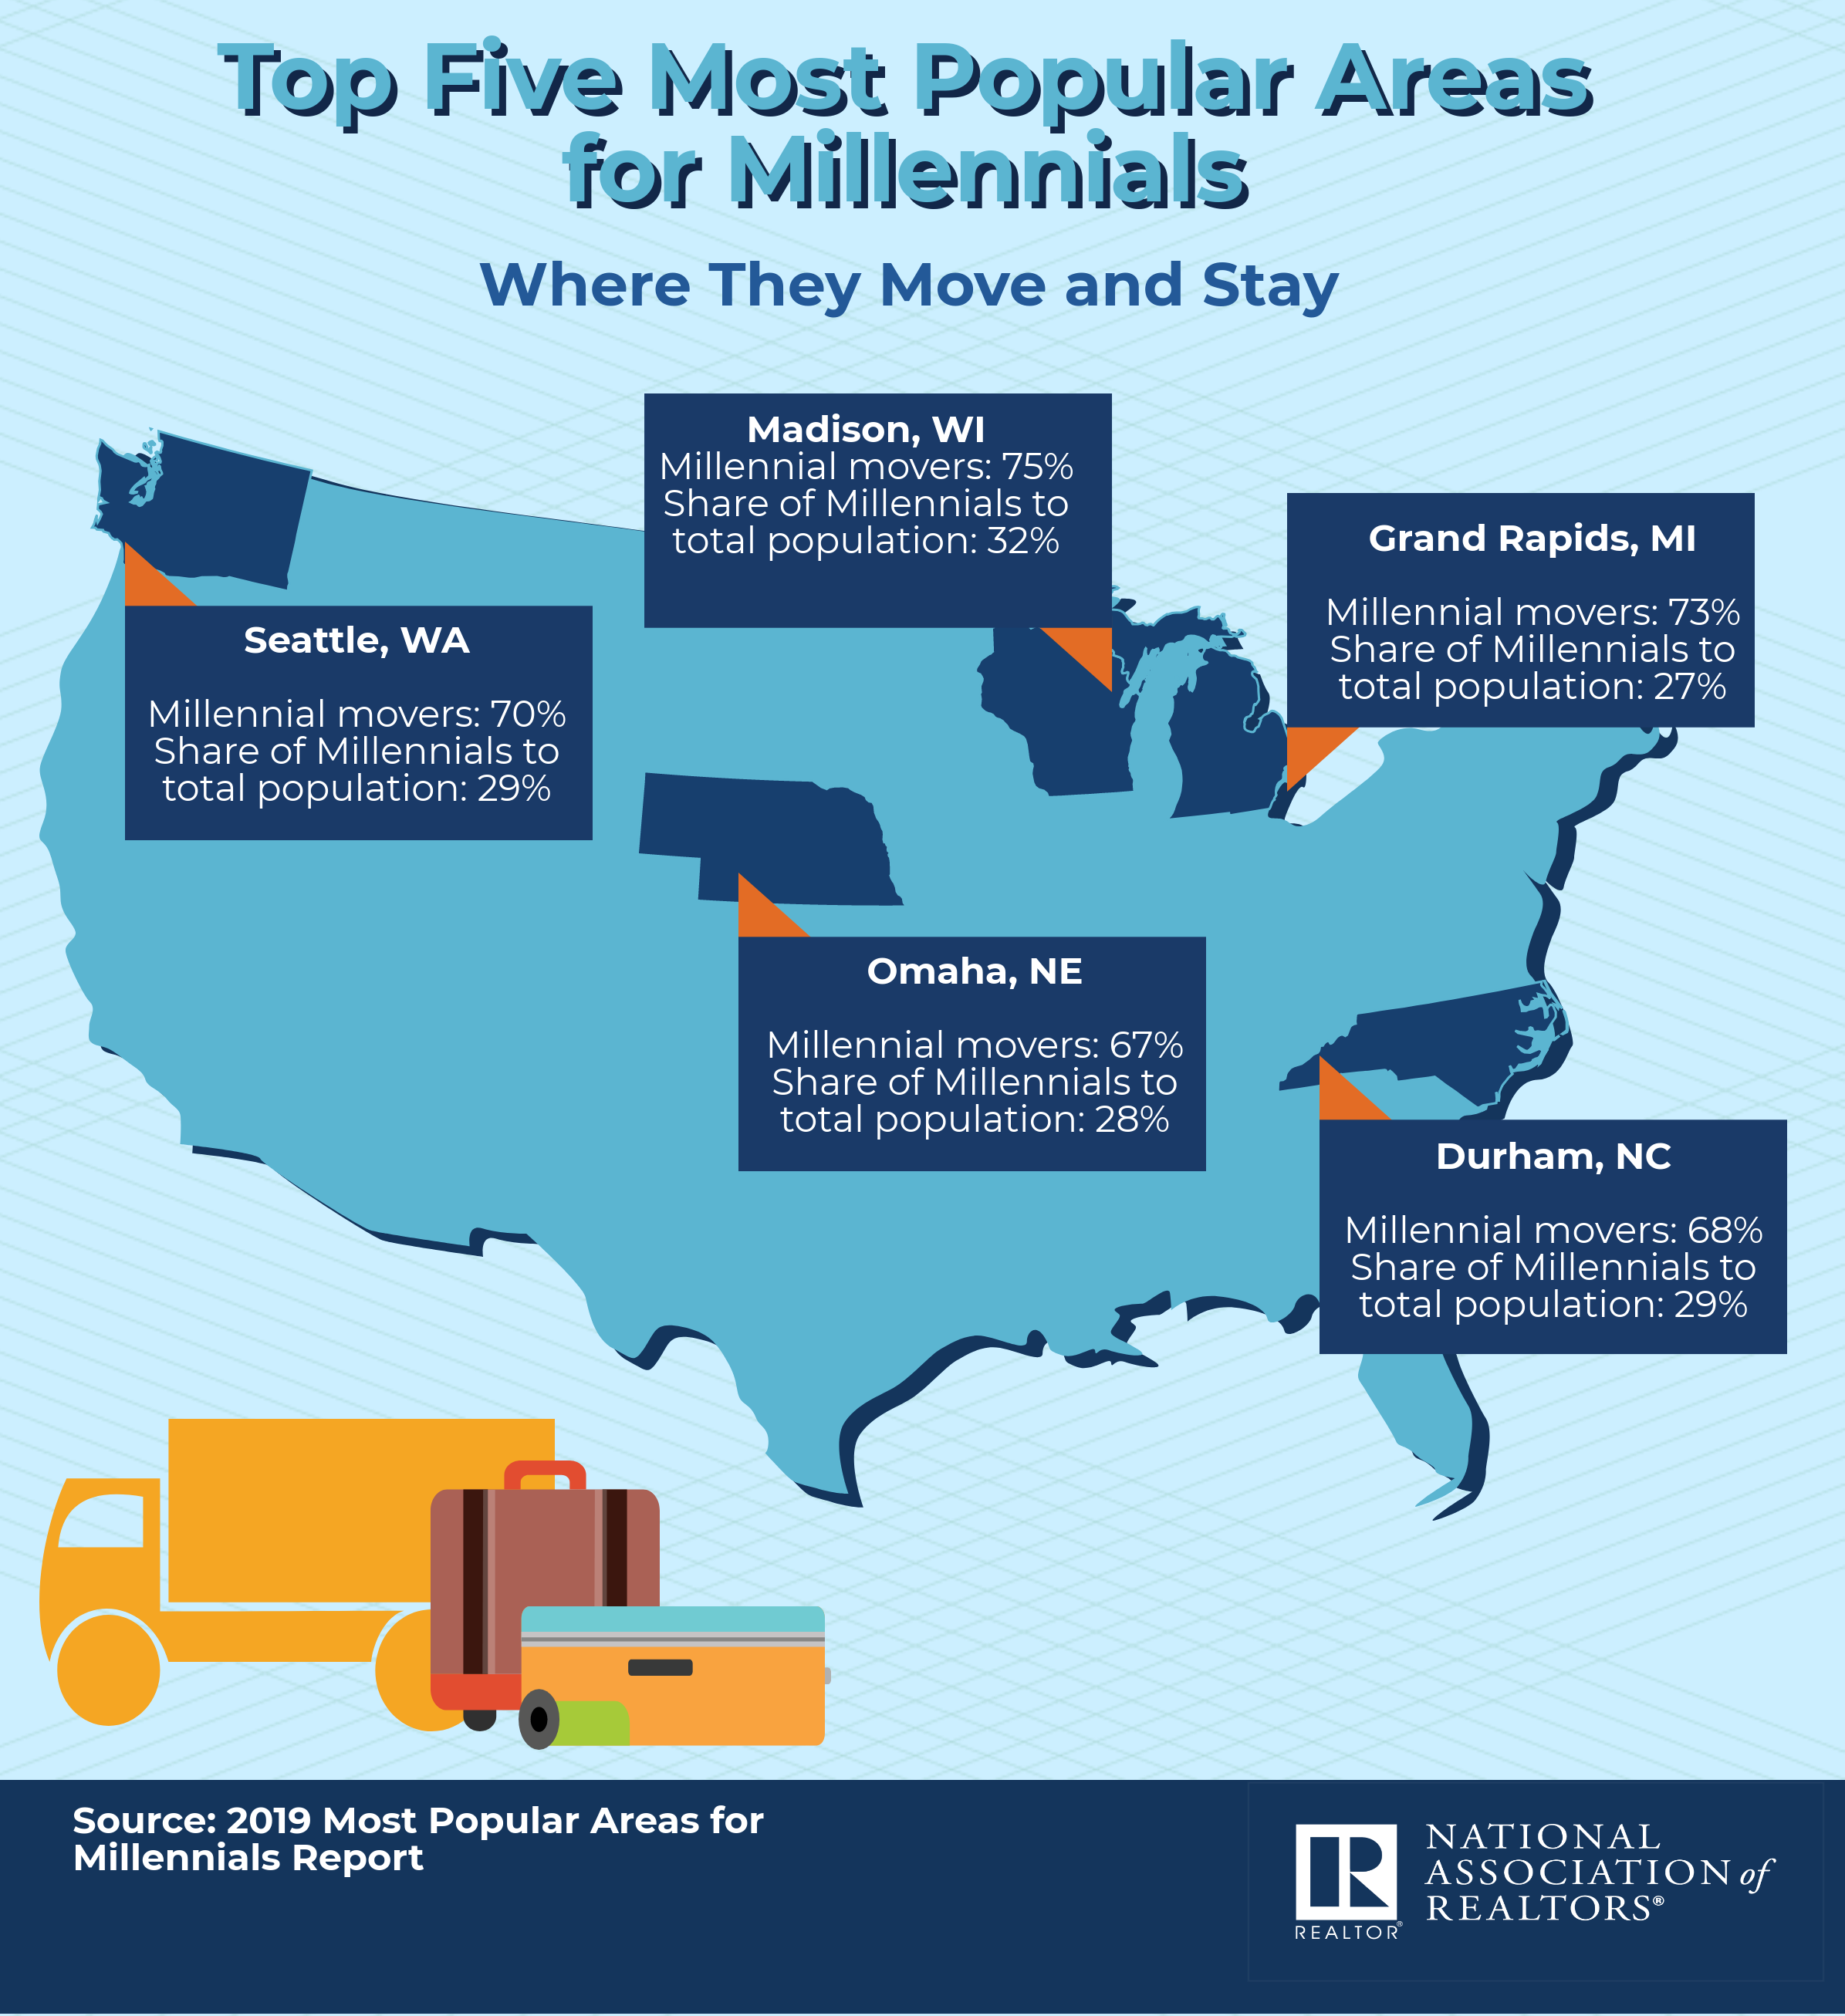 Top 5 Popular Areas for Millennials 2019.png